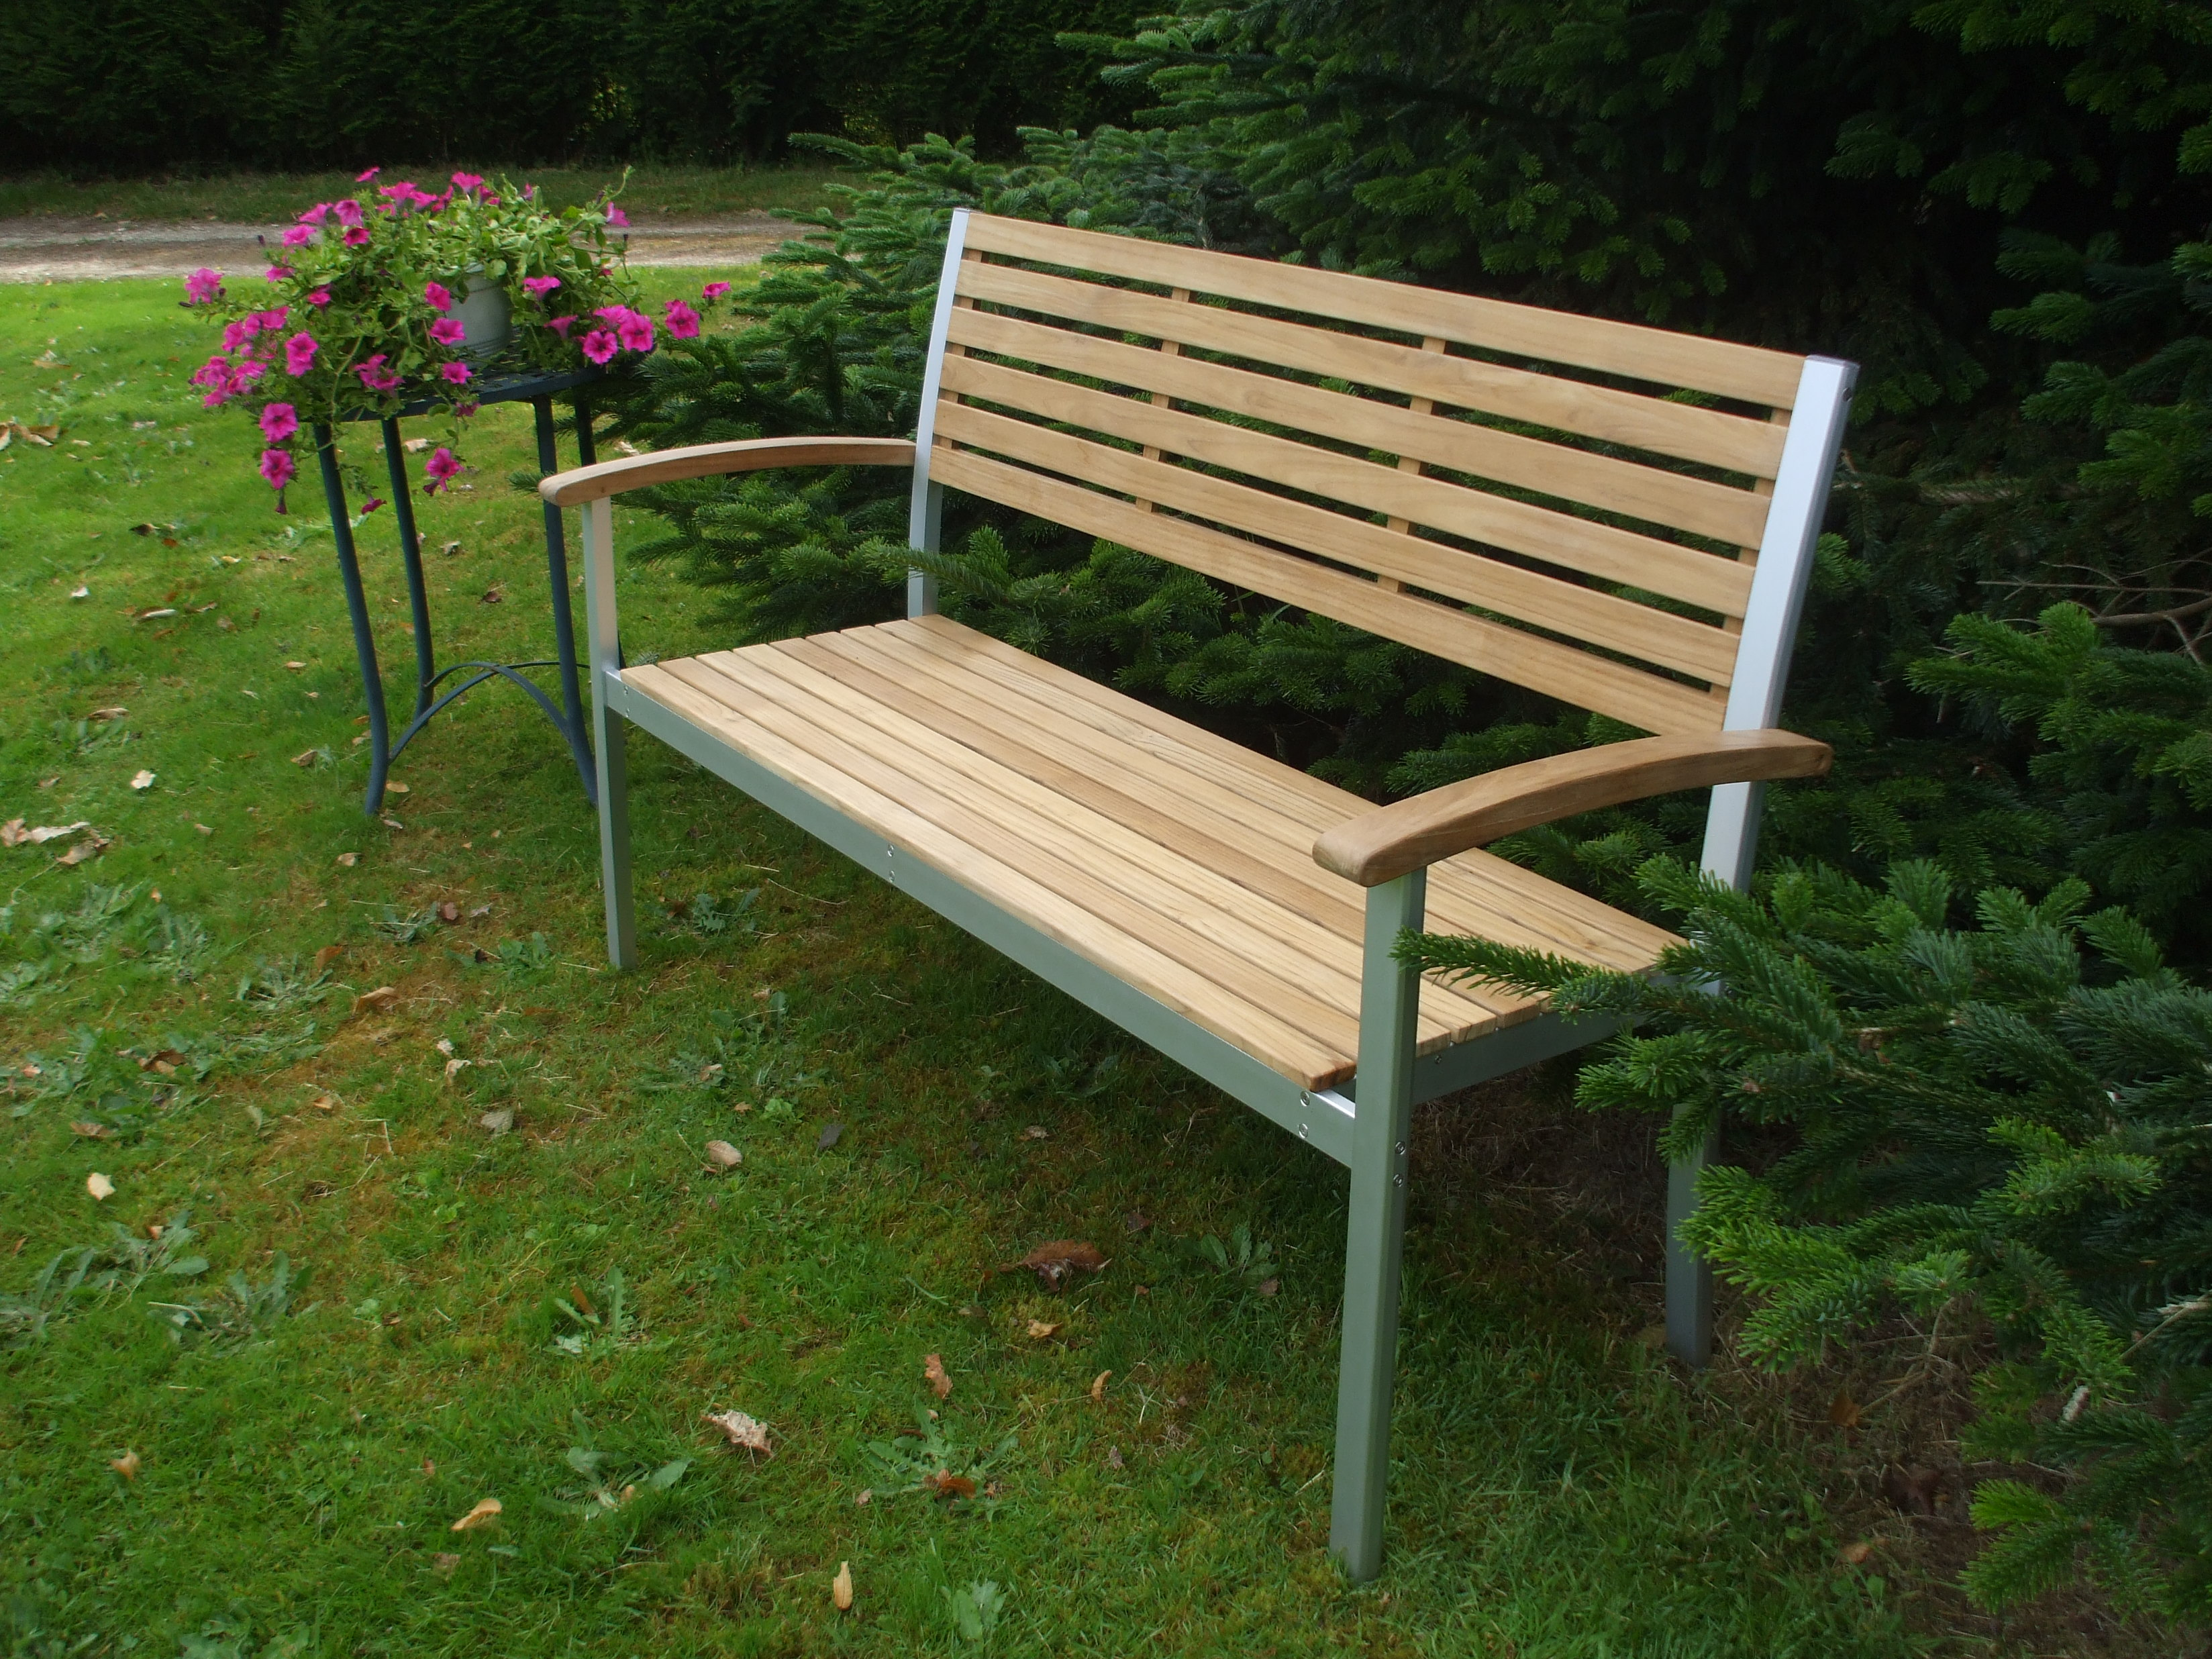 Un banc de jardin solide confortable et design pictures for Bancs de jardin castorama